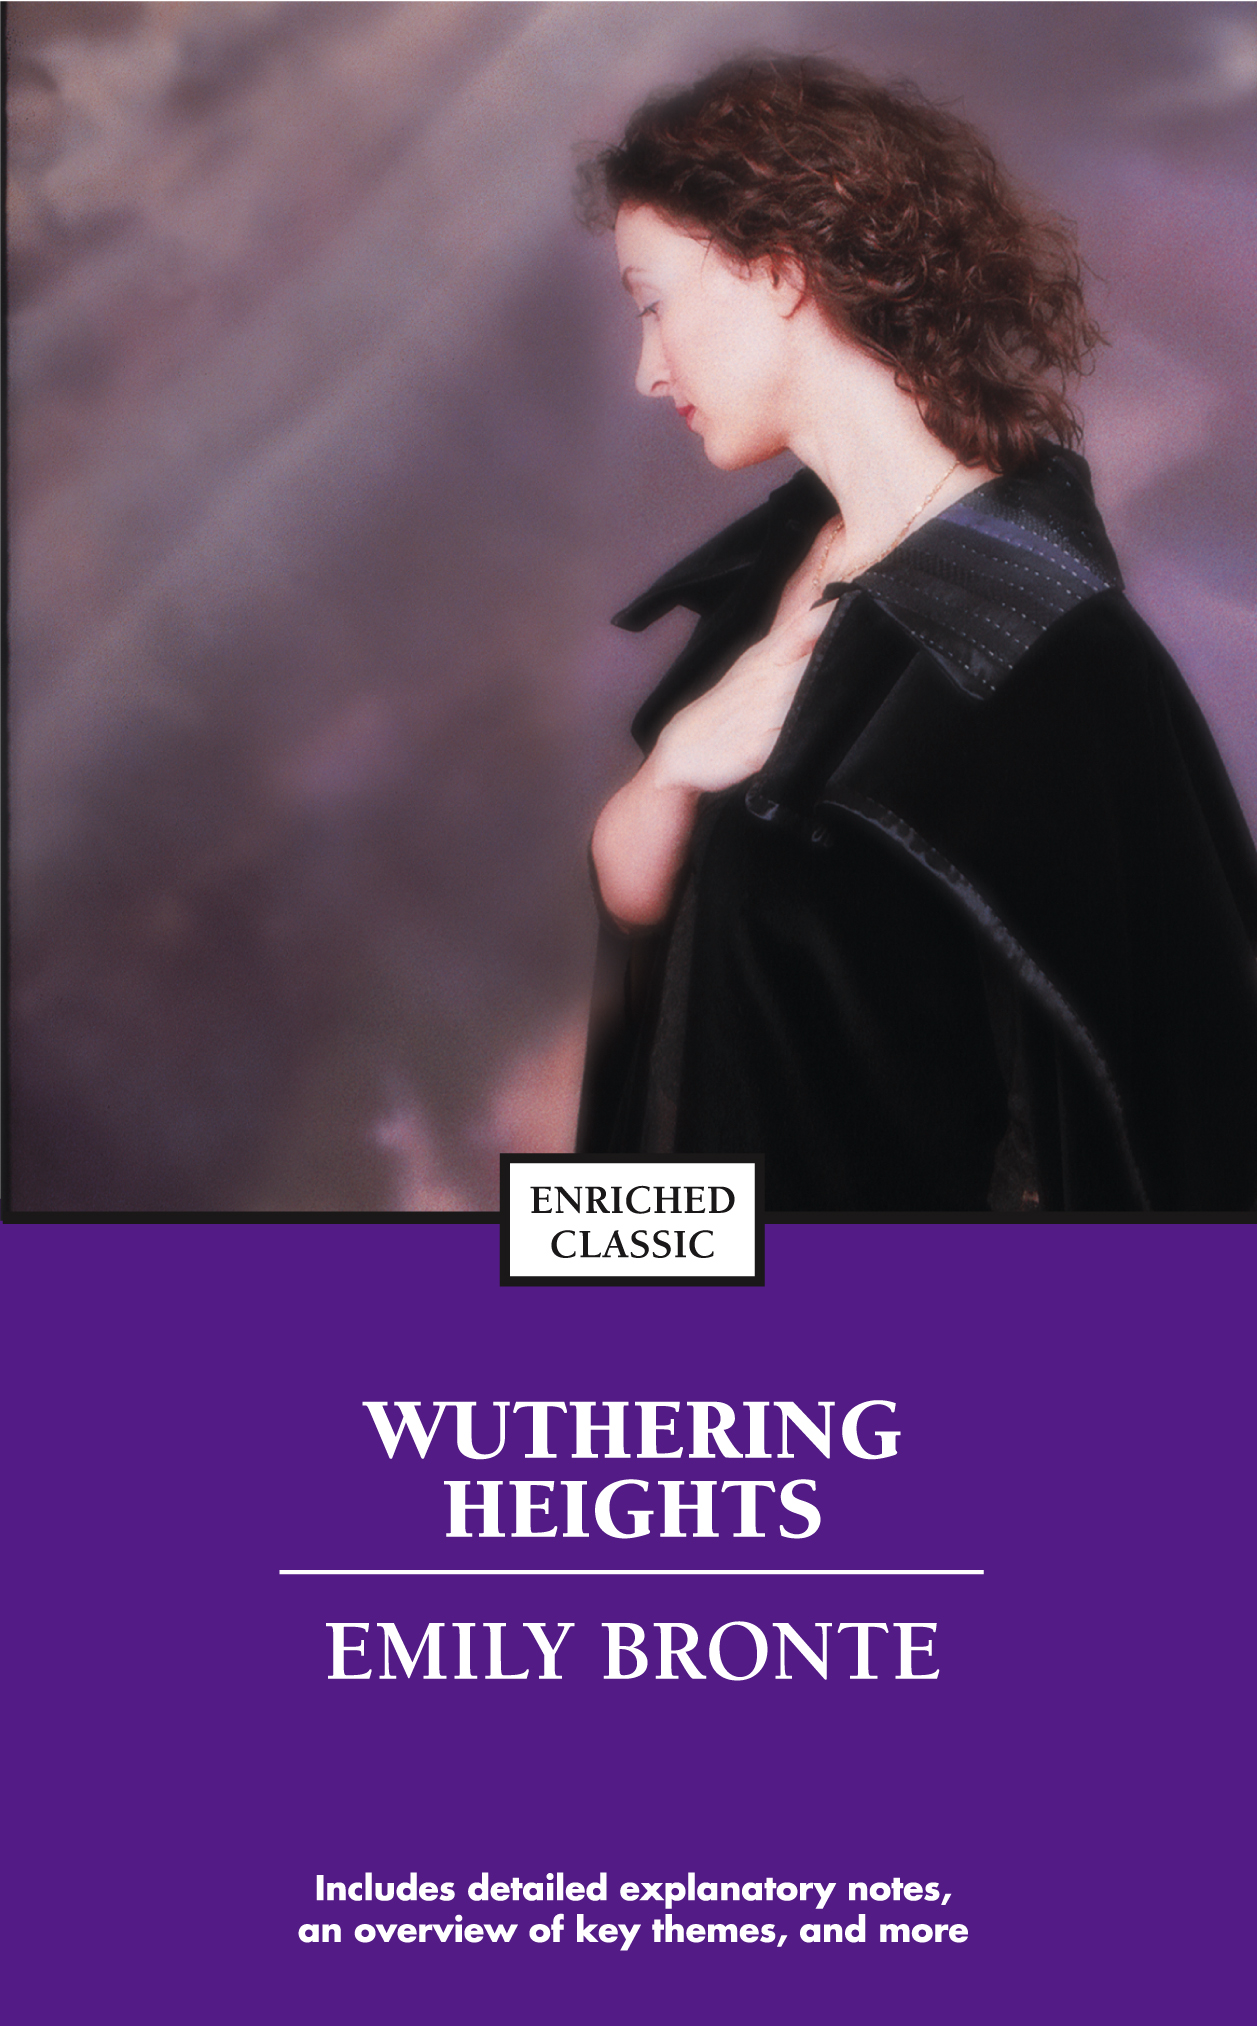 Wuthering Heights (song)